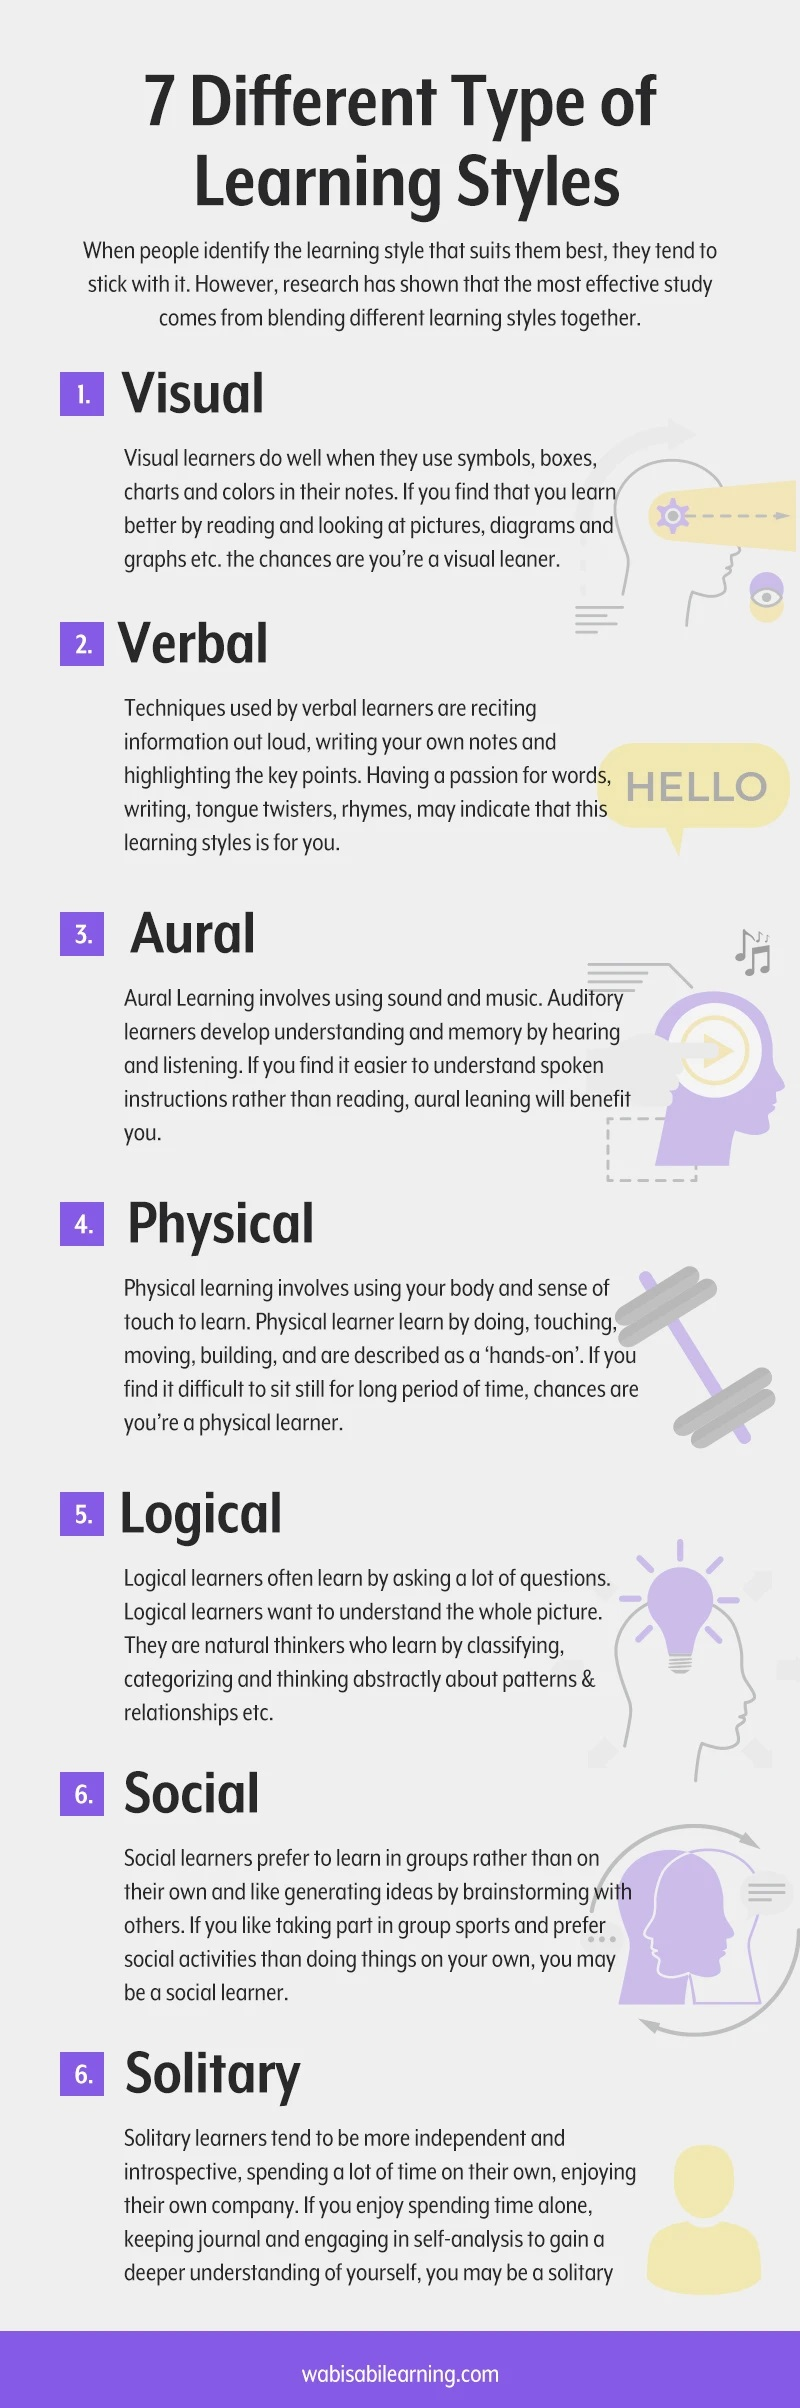 7 Diffrent Types Of Learning Styles #infographic